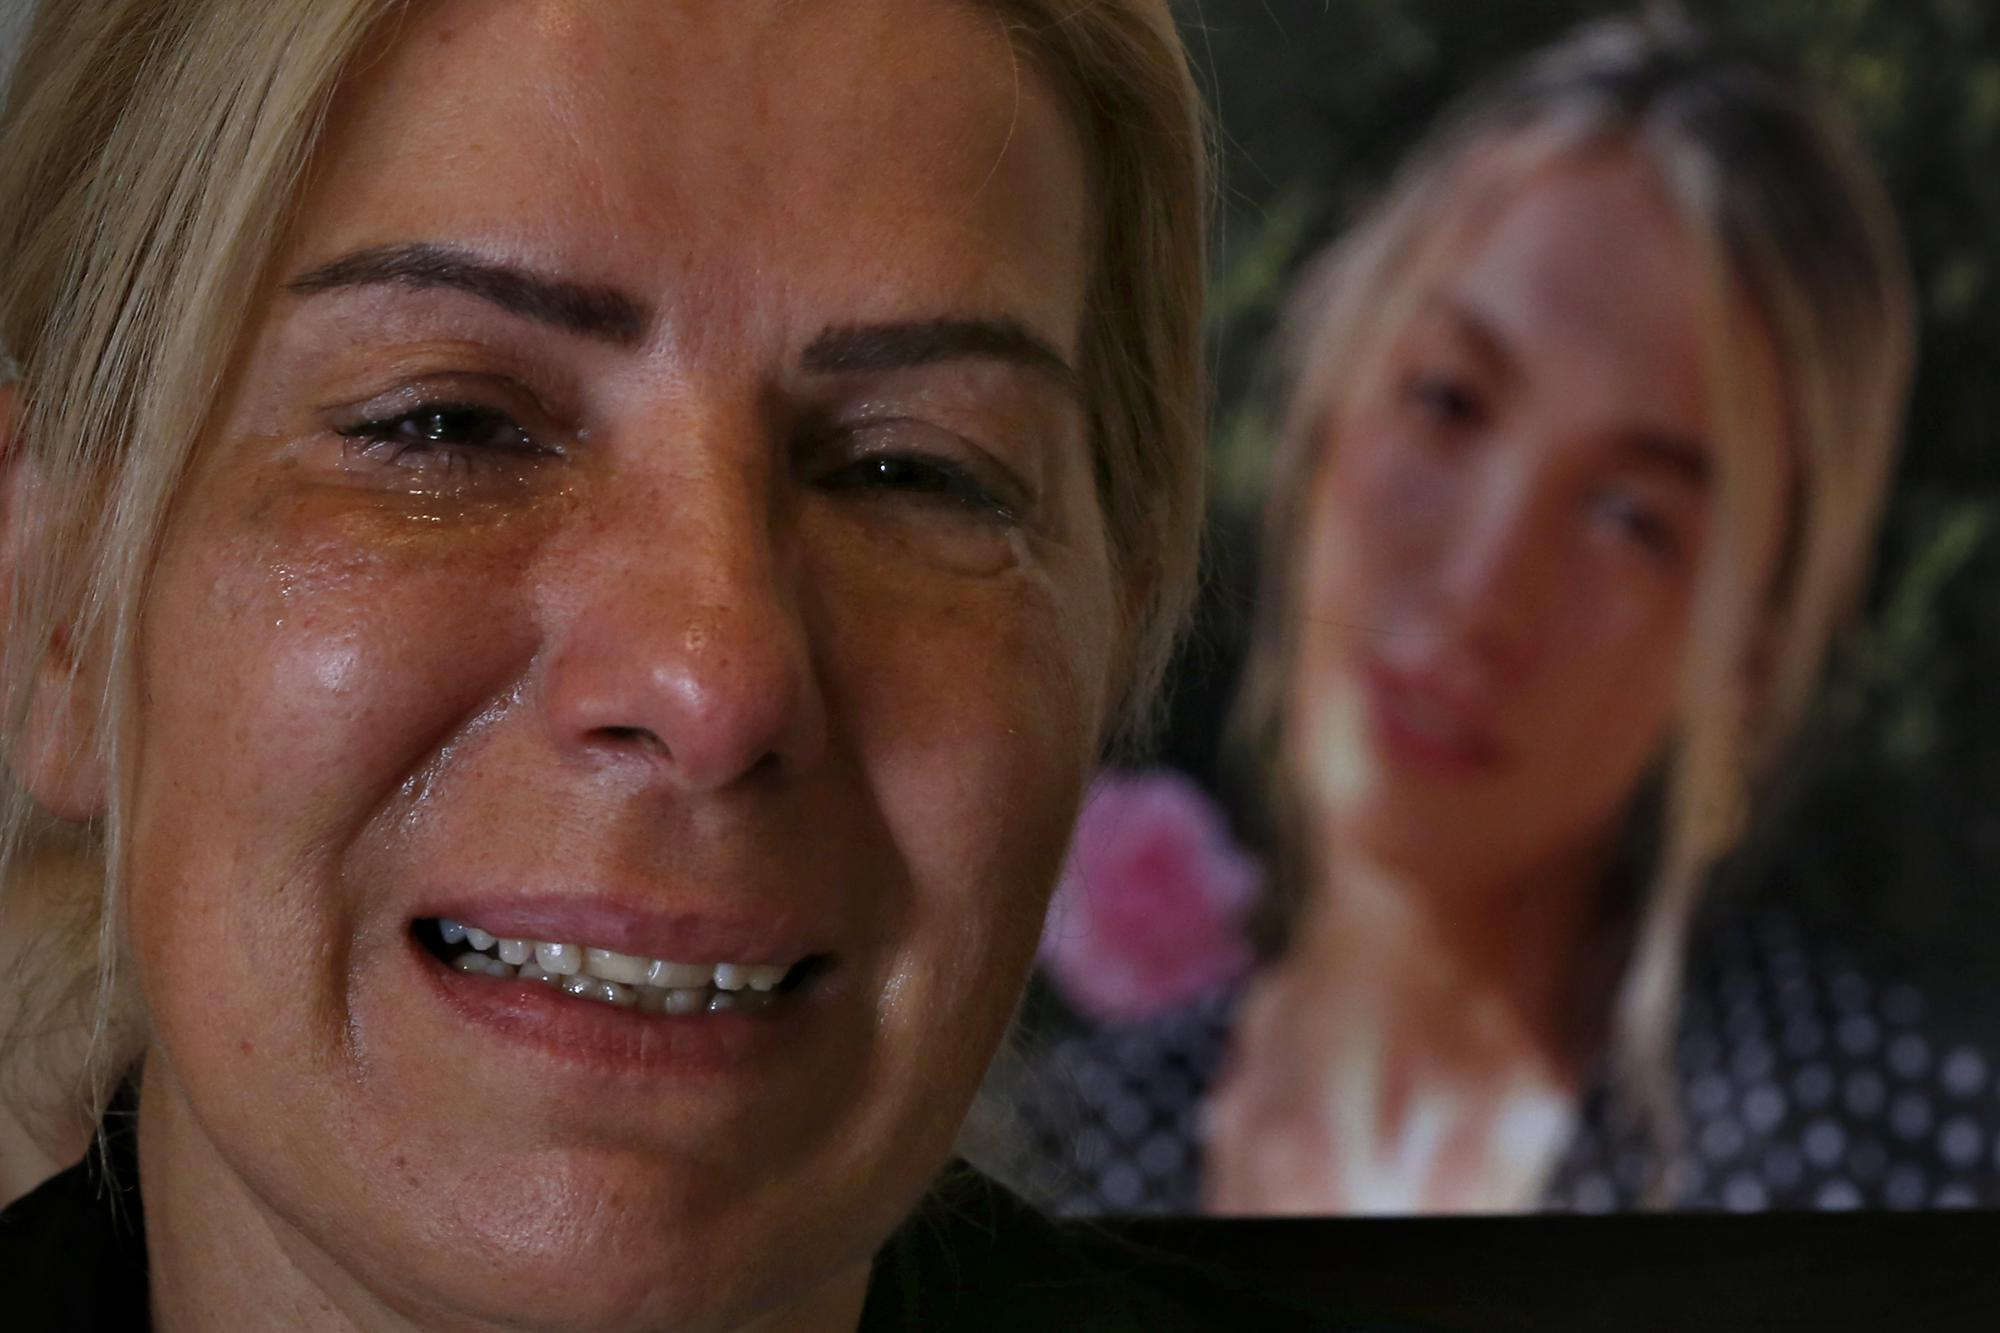 Chouchan Yeghiyan weeps in front of a picture of her daughter, Jessica Bezdjian, who was killed in last year's massive blast at Beirut's seaport, during an interview with The Associated Press at her home in Antelias, Lebanon, Monday, July 12, 2021. Bezidjian was one of four female nurses who lost their lives at the Saint George Hospital University Medical Center that day, including her close friend Jessica Kahwaji who was instantly killed. (AP Photo/Bilal Hussein)